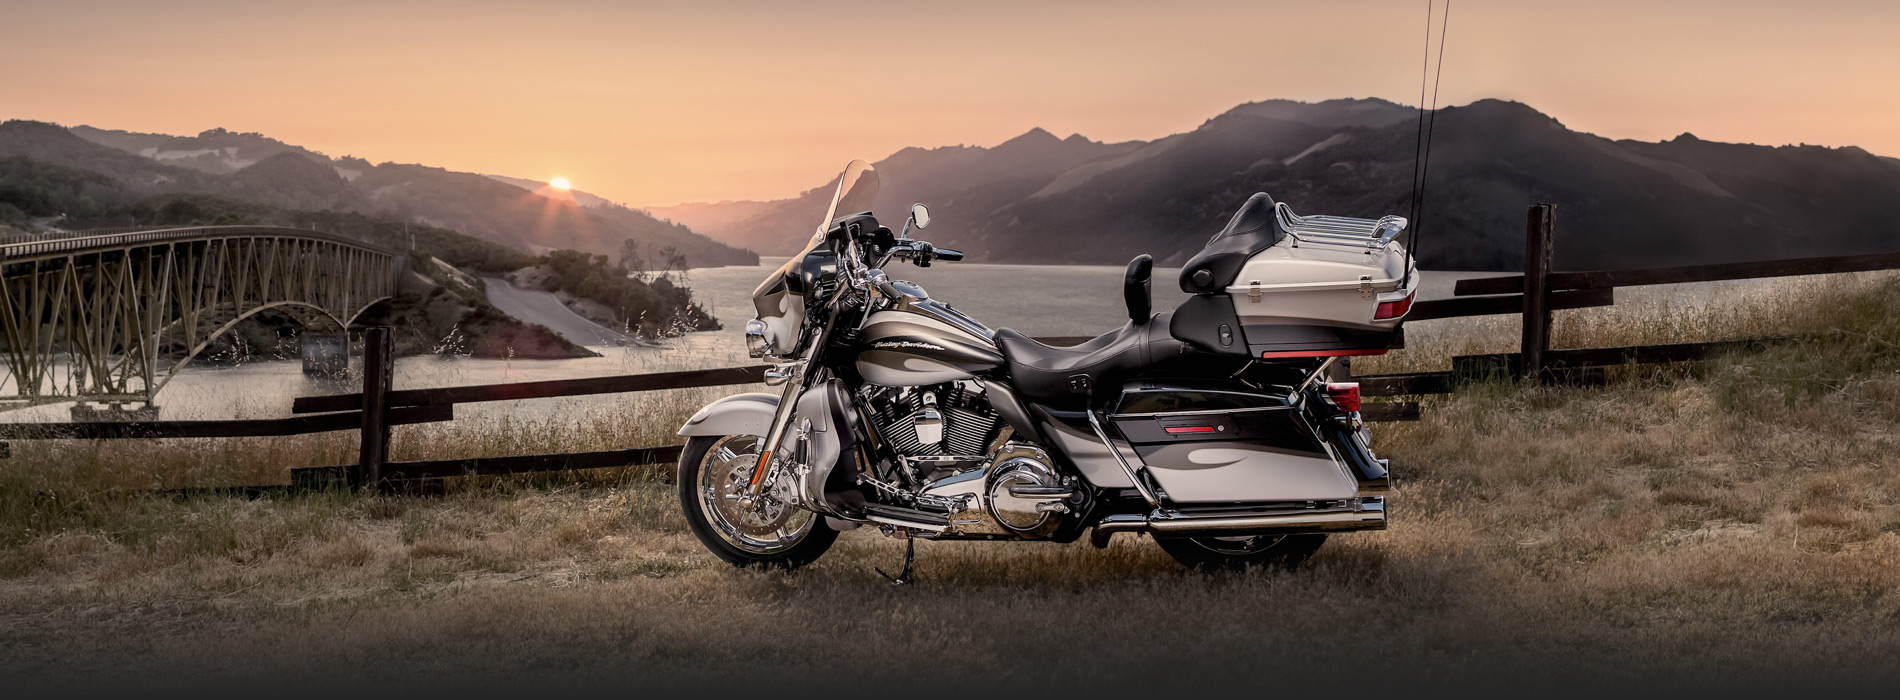 1900x700 - Harley-Davidson Electra Glide Ultra Classic Wallpapers 19